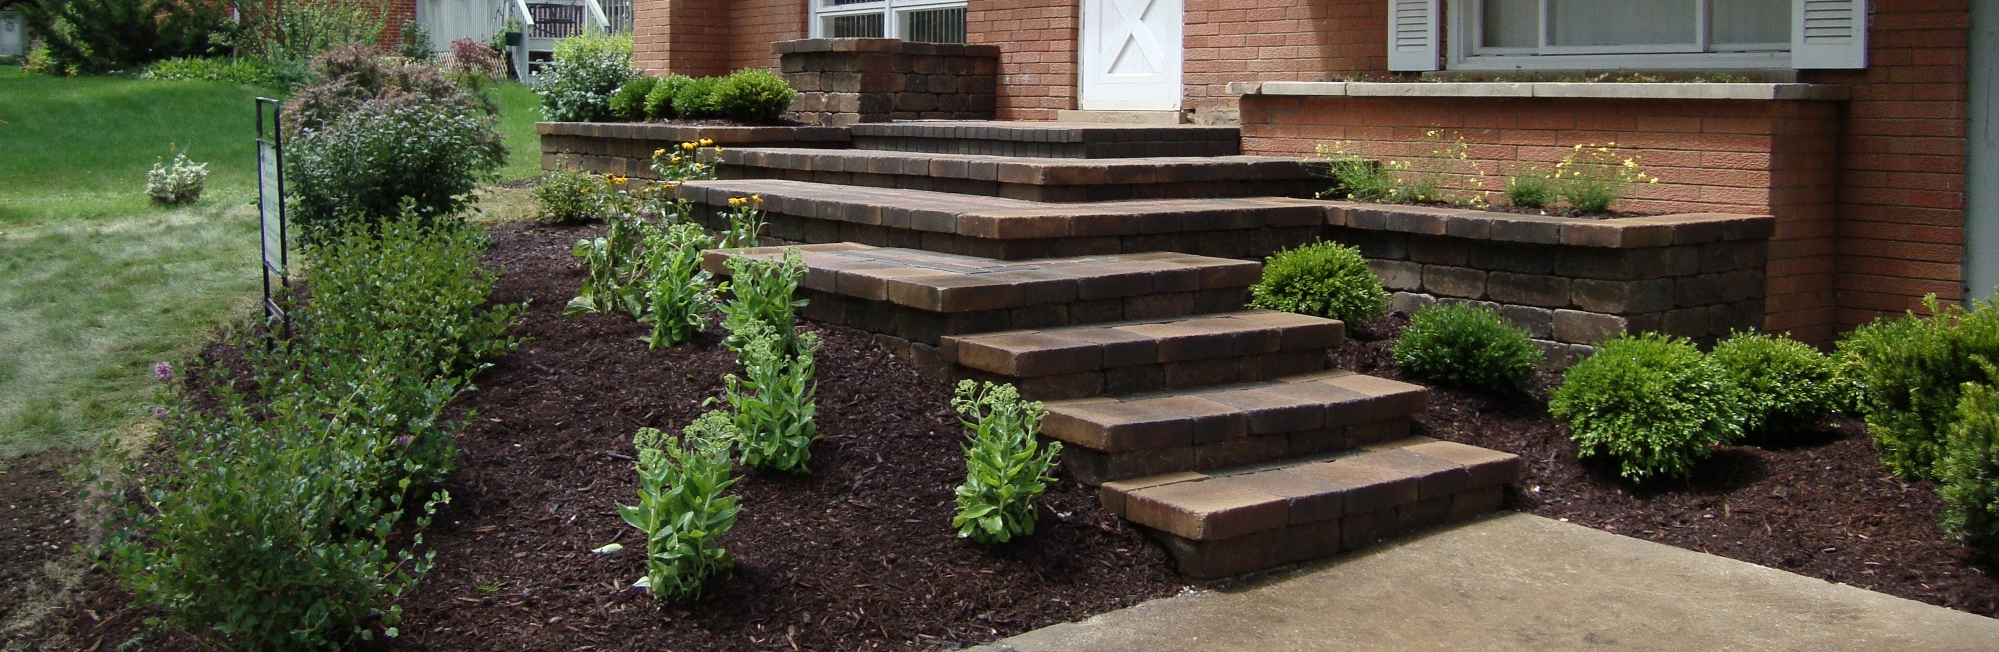 Moonlake Landscaping - Residential & Commercial Landscaping